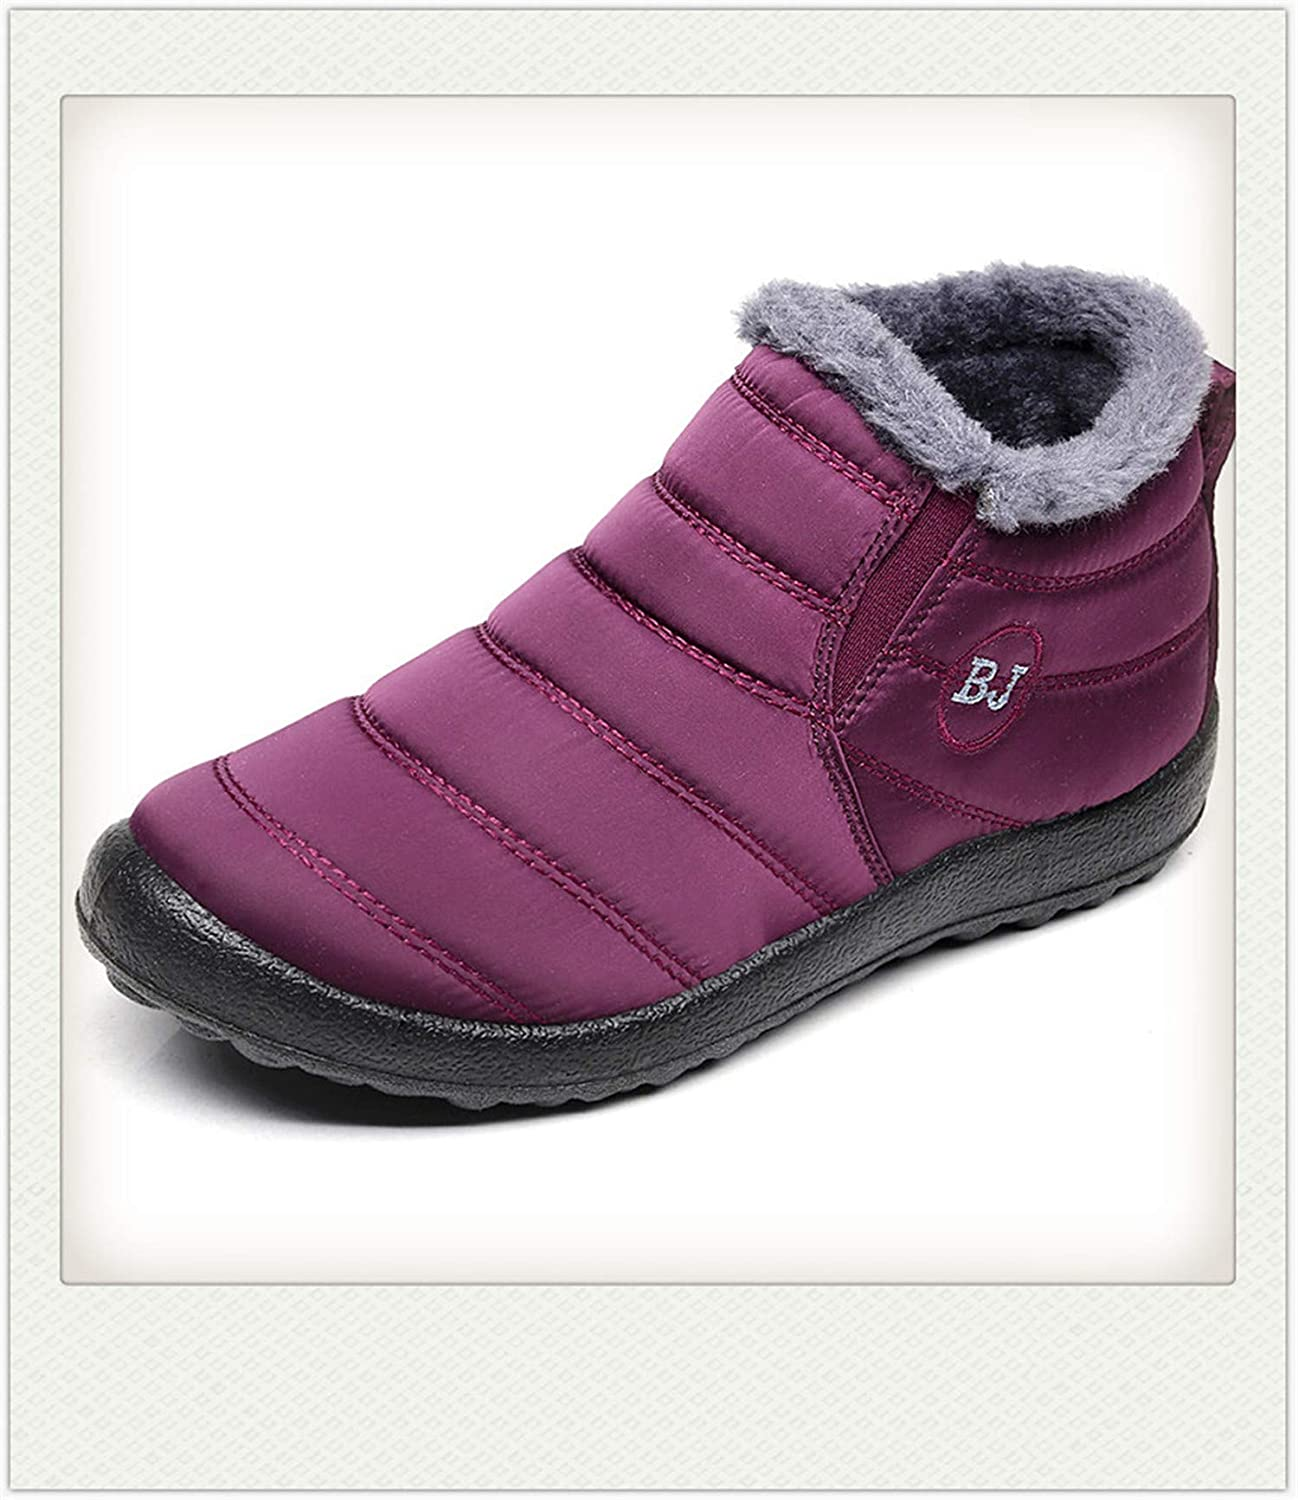 Hbvza Women Boots Keep Warm Winter Shoes Woman Waterproof Snow Boots with Fur Winter Botas Mujer Ankle Boots Female Plus Size 35-46